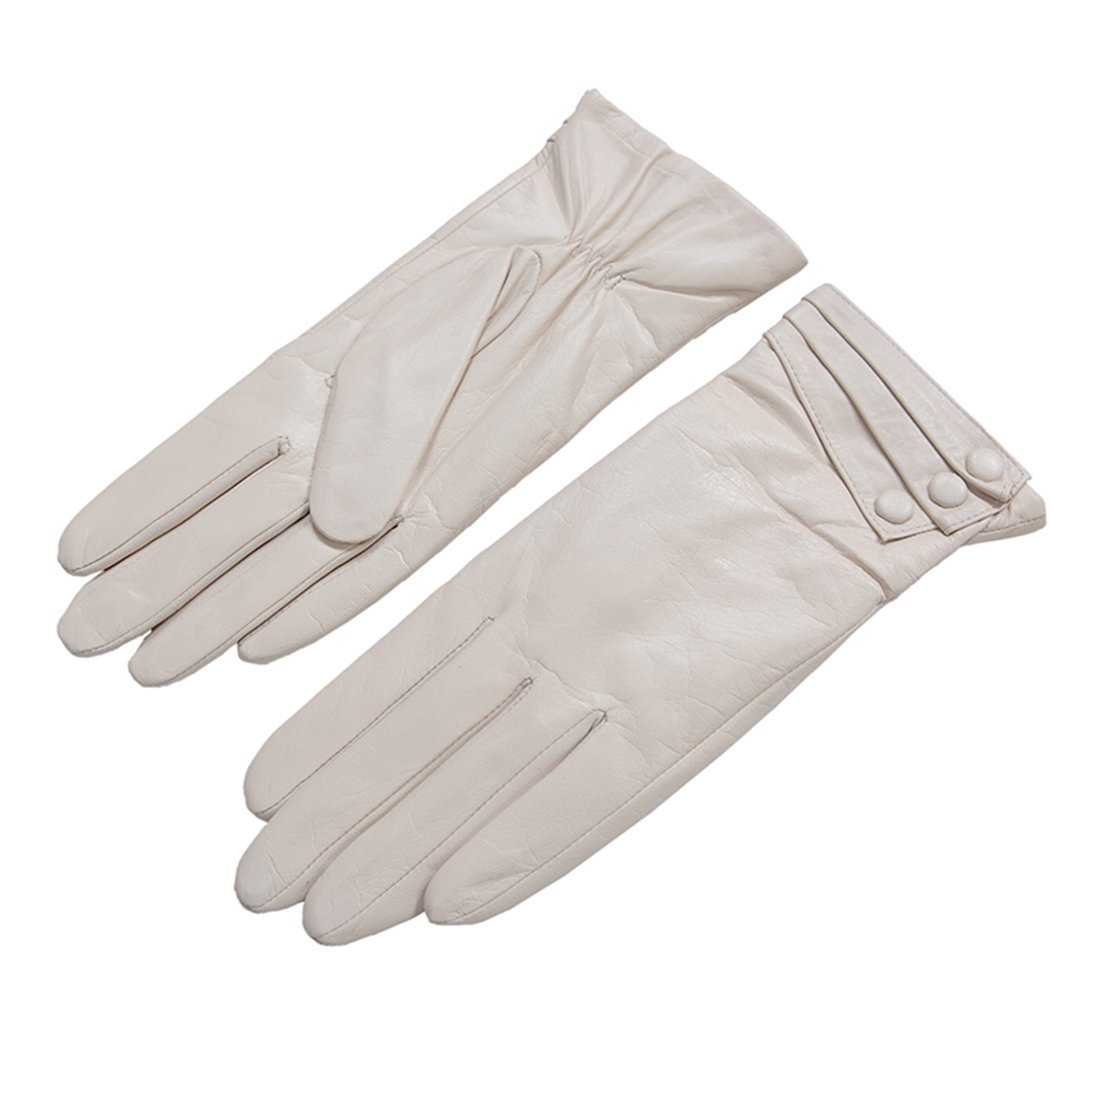 Nappaglo Nappa Leather Gloves Warm Lining Winter Button Decoration Imported Leather Lambskin Gloves for Women (M, Beige)